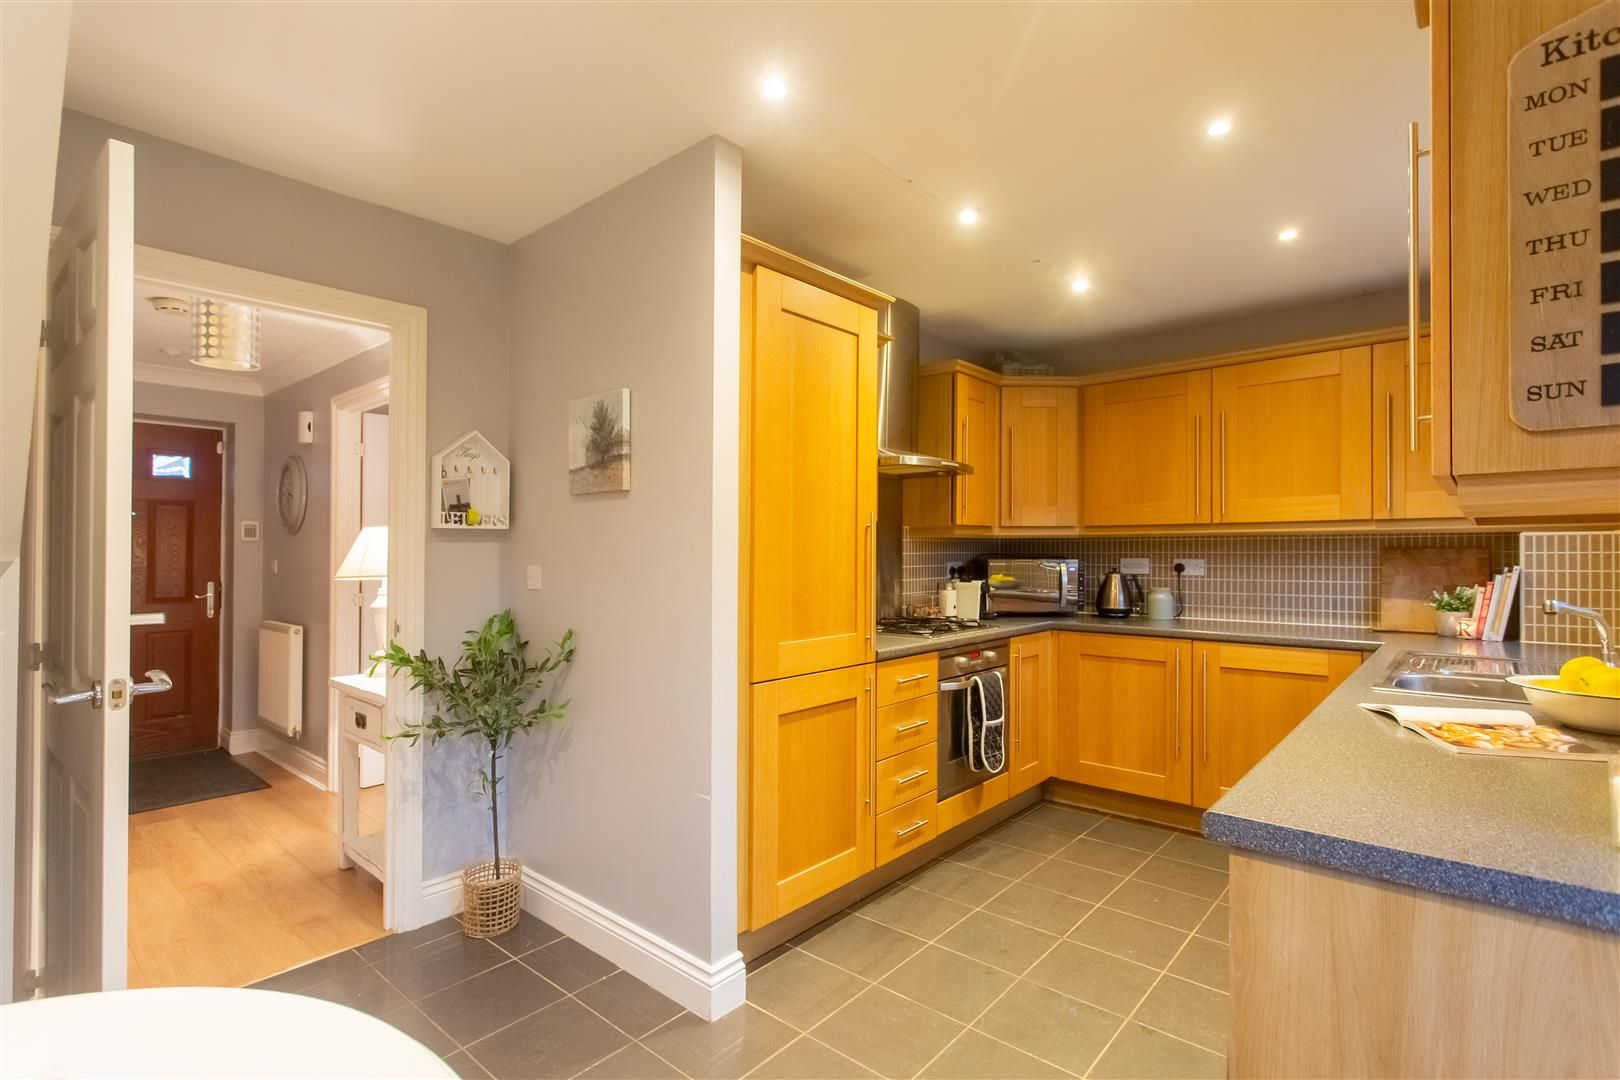 3 bed detached for sale in Hereford 5